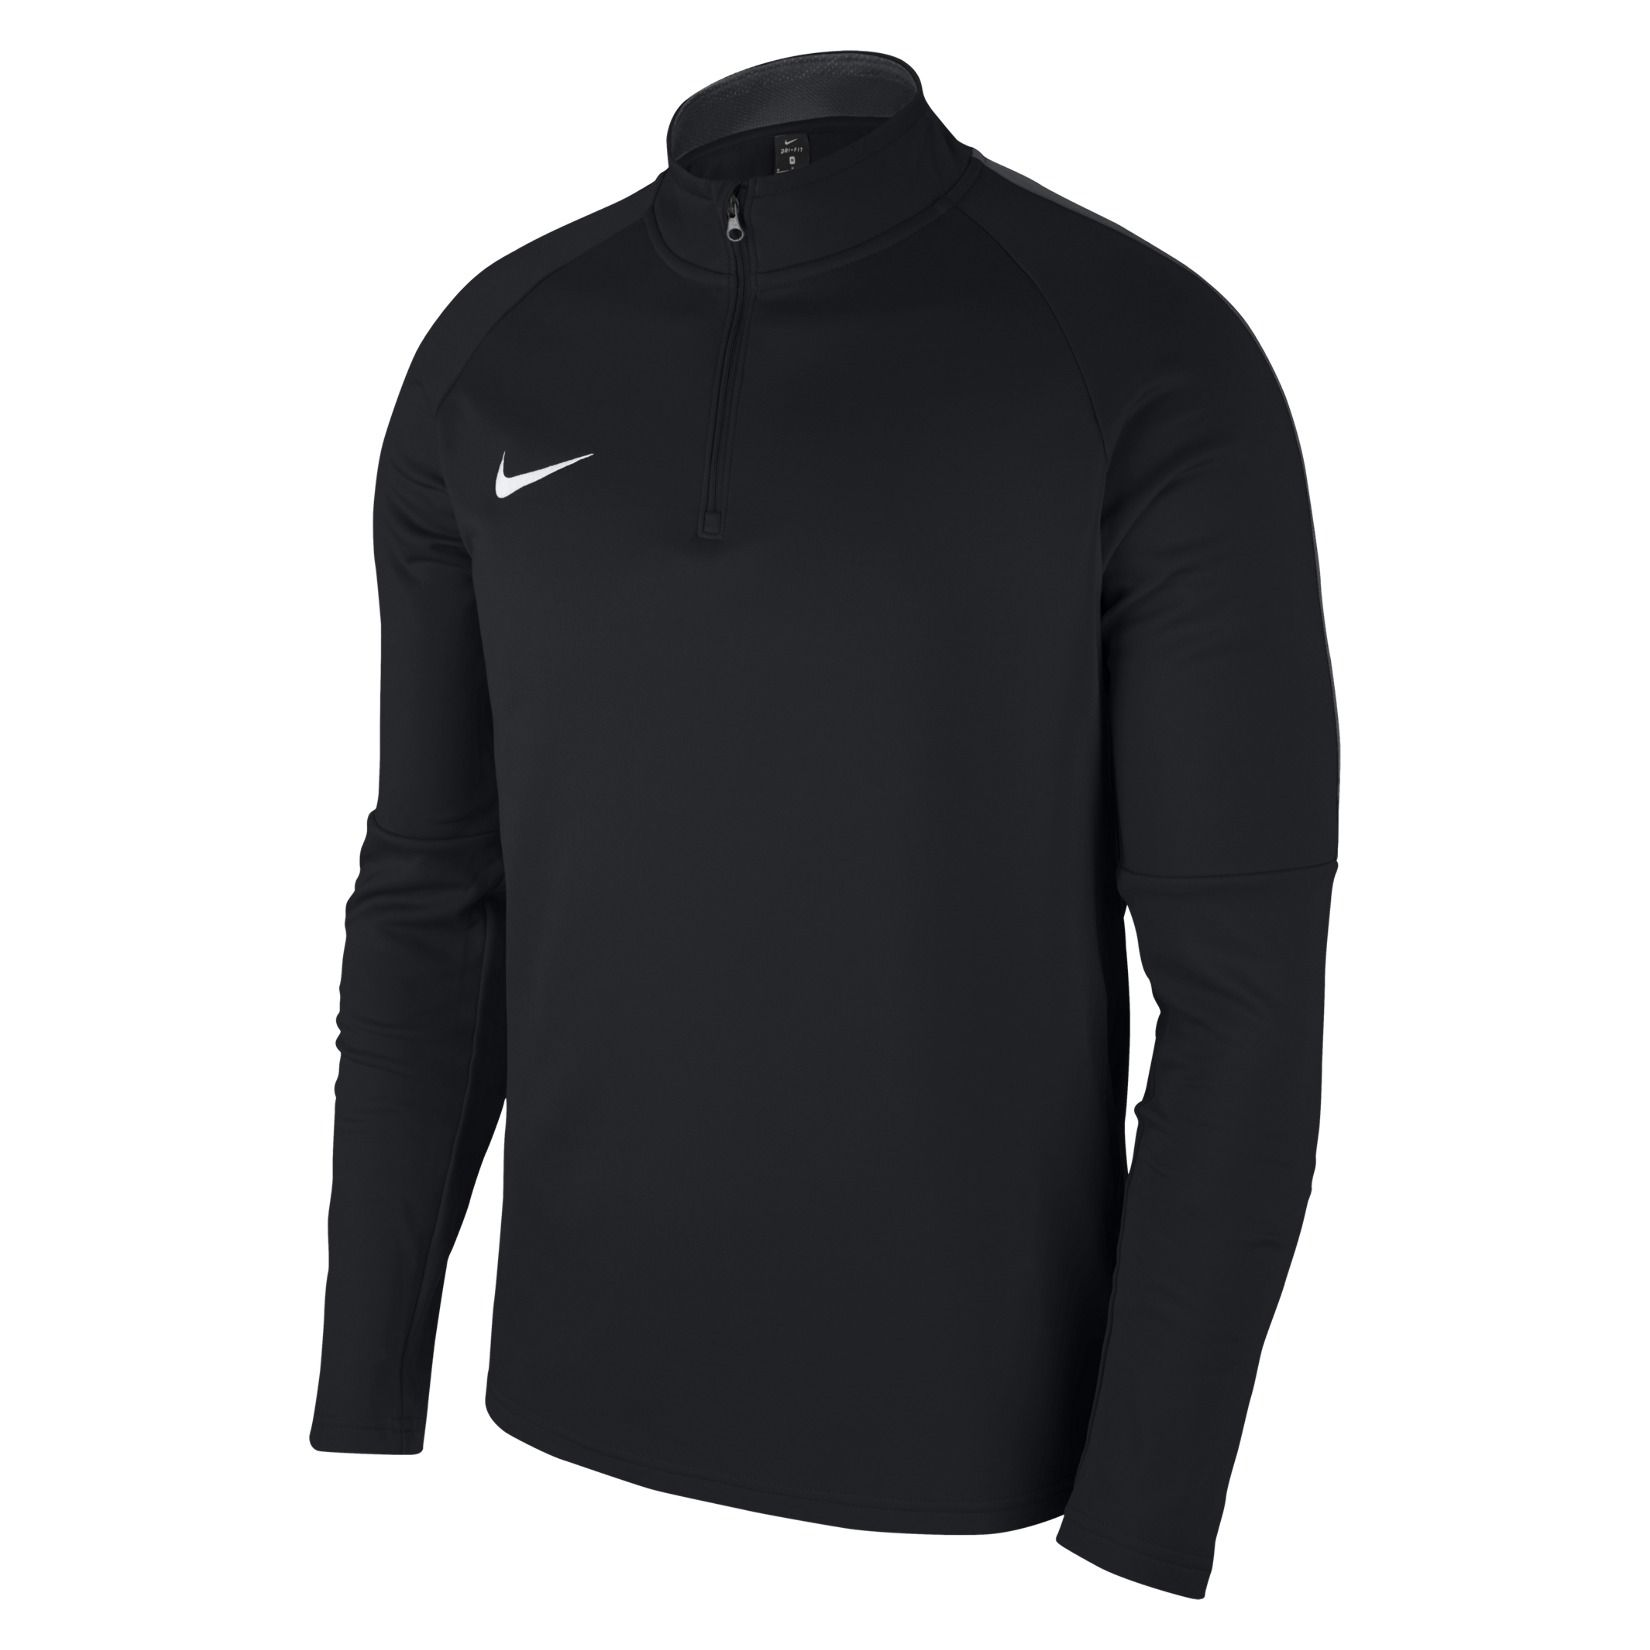 NIKE DRY ACDMY18 DRIL TOP LS 893624-010